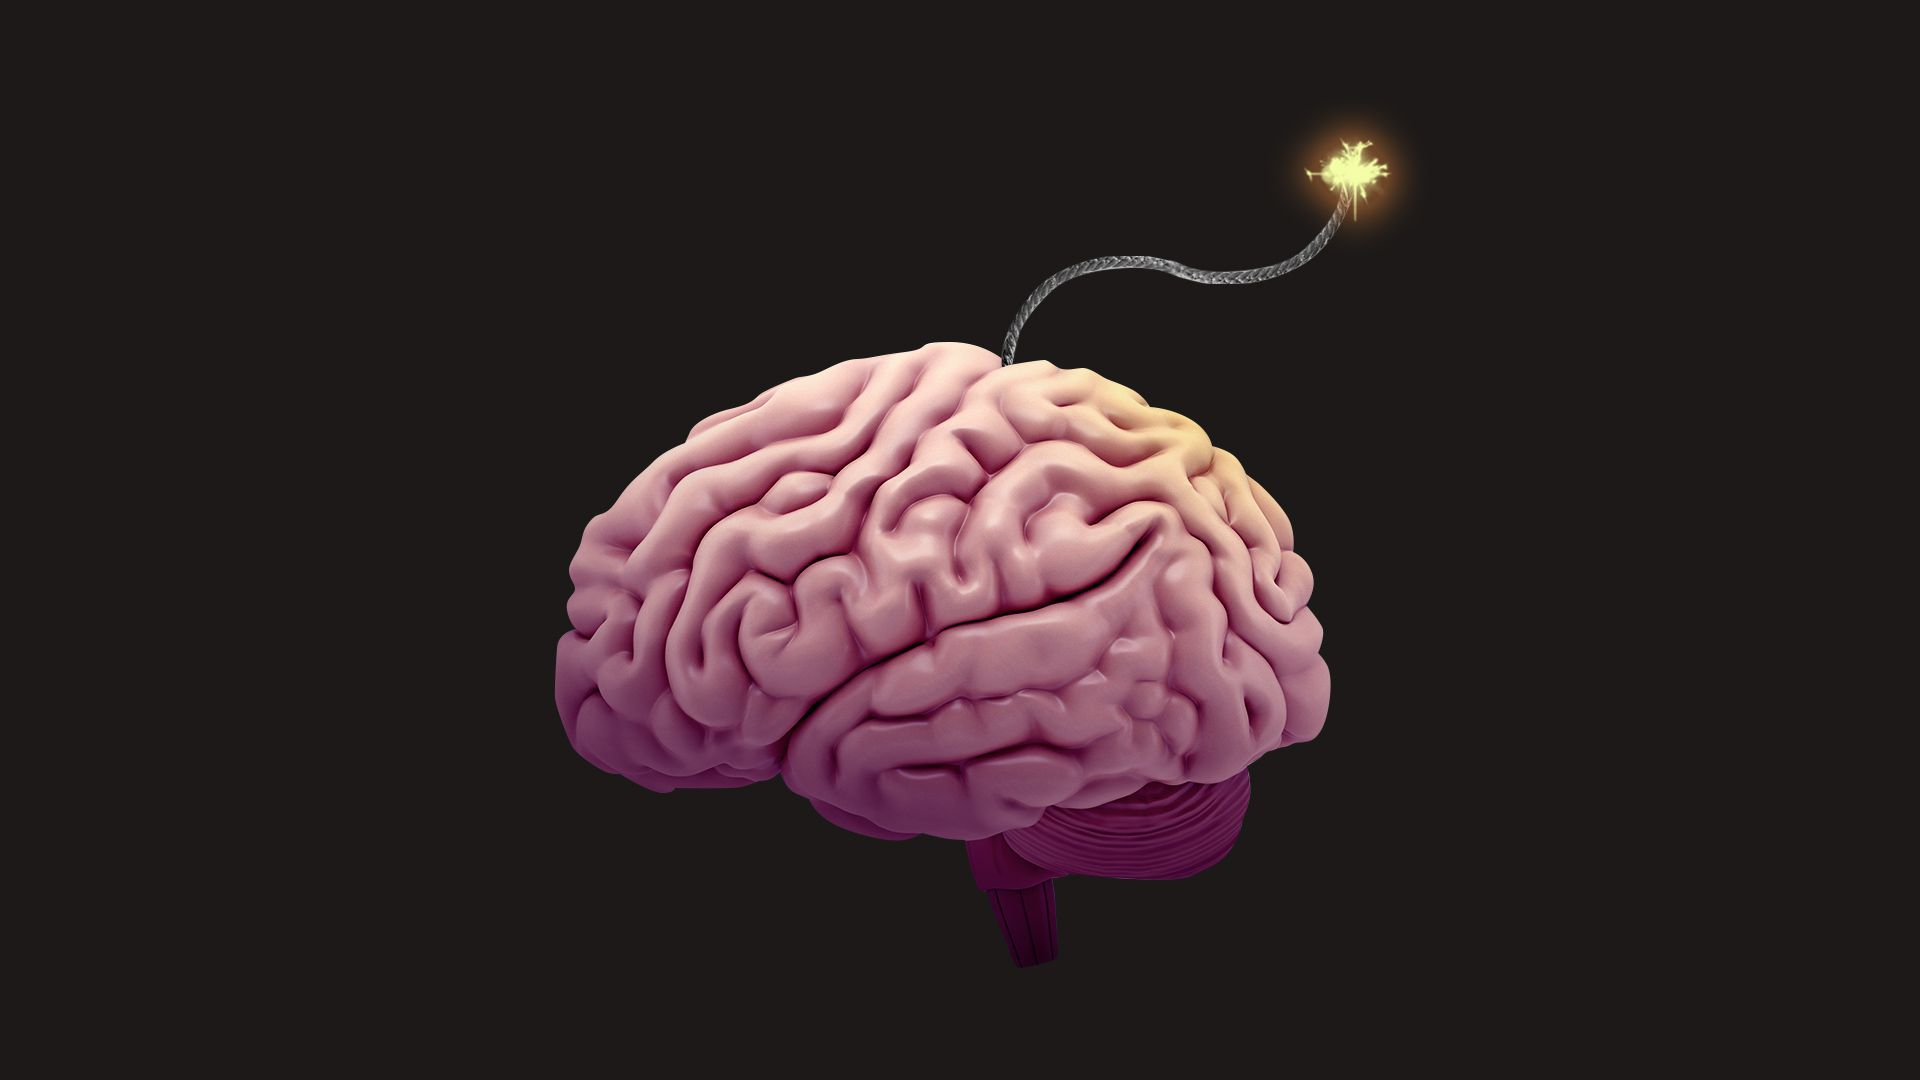 Illustration of a brain with a lit wick as if it were a bomb.